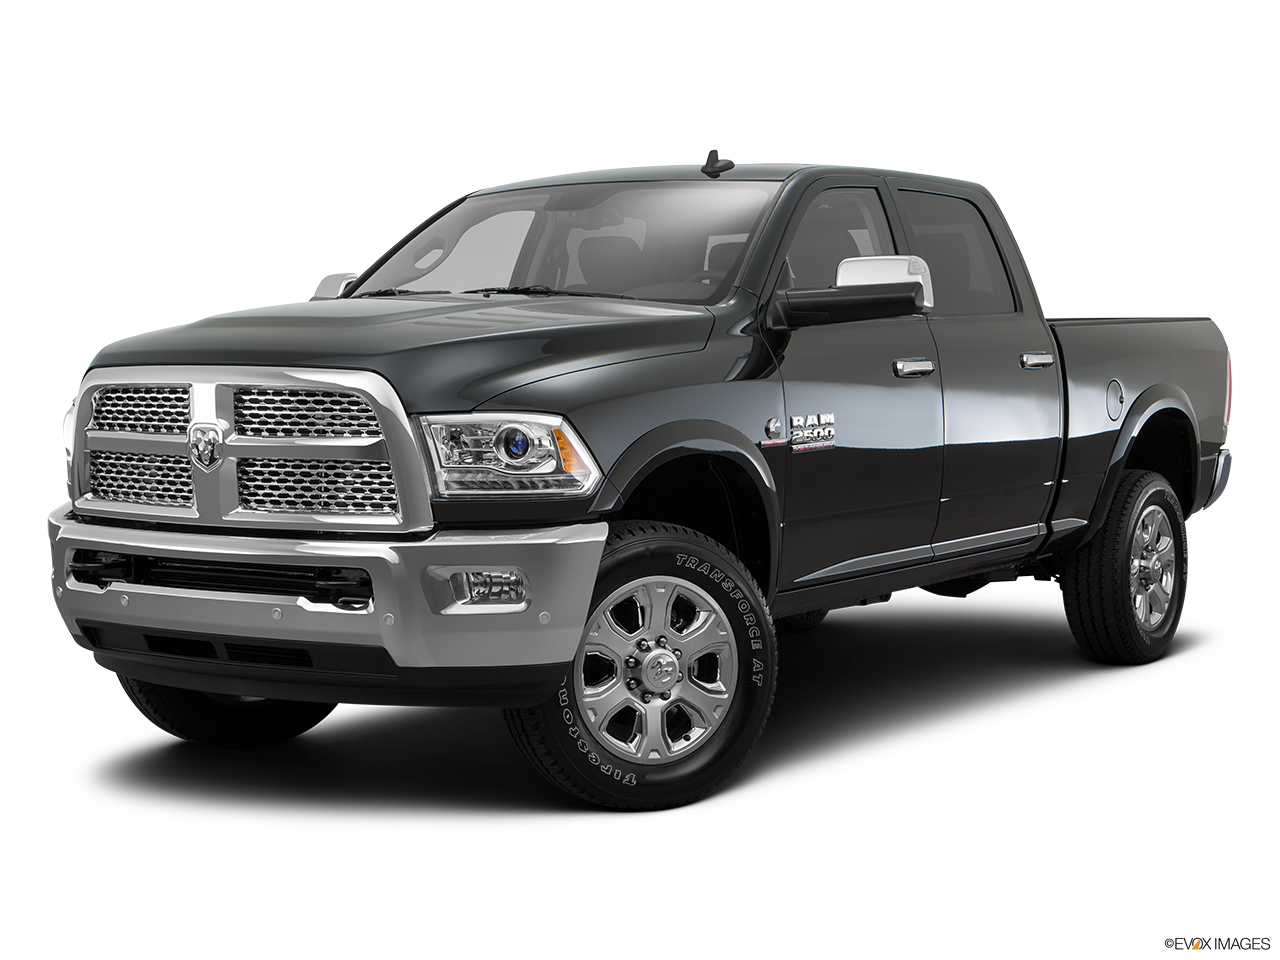 Test Drive A 2016 RAM 2500 at Arrigo Dodge Chrysler Jeep Ram Ft. Pierce in Fort Pierce